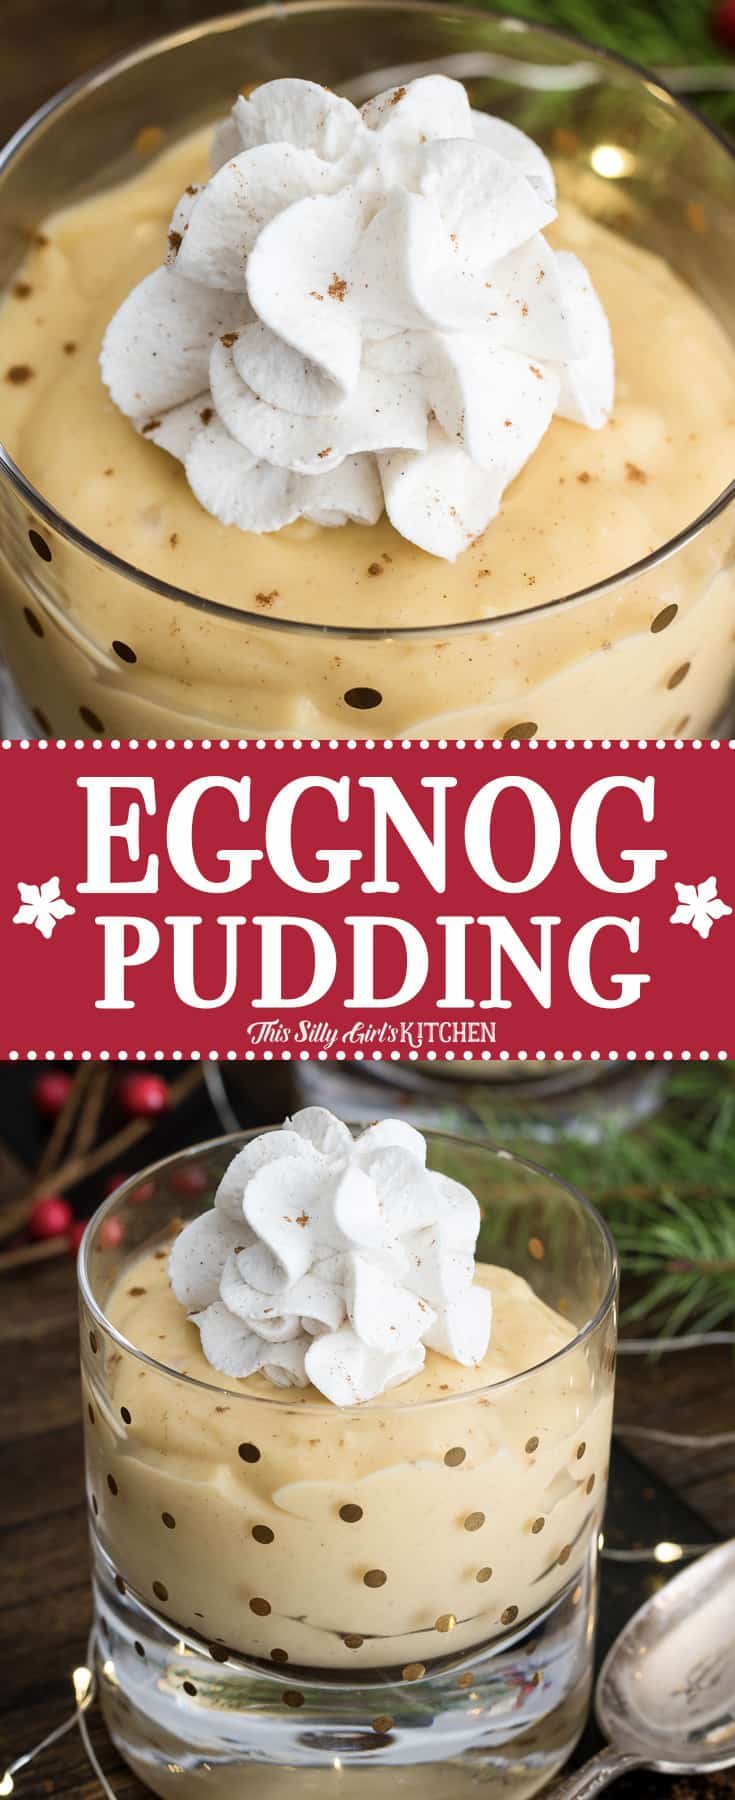 Collage image of Eggnog Pudding with words in middle